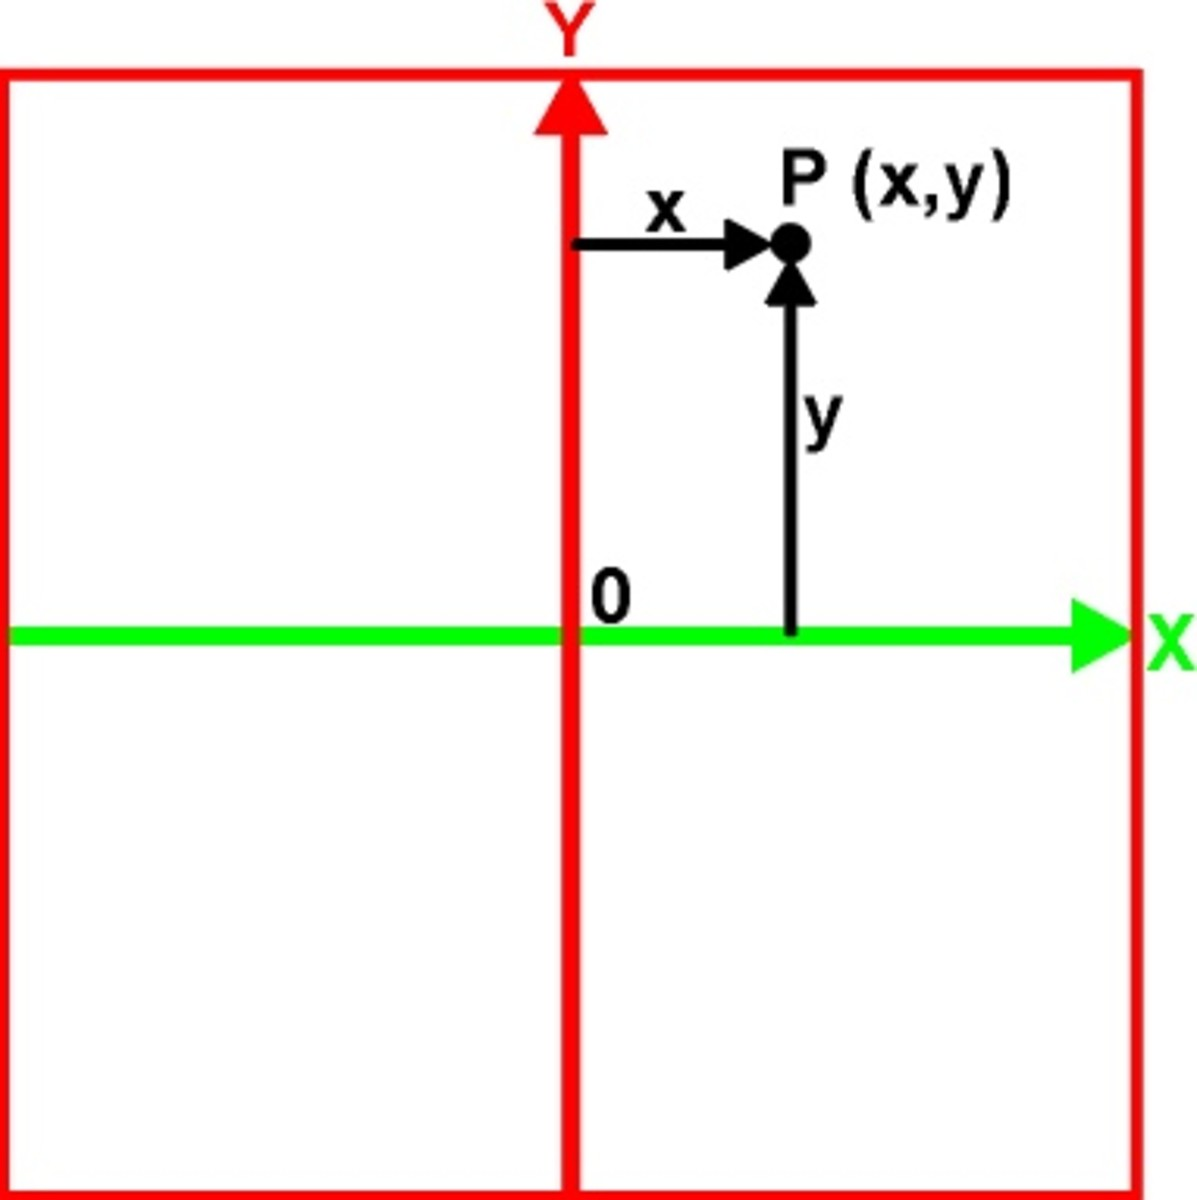 Fig. 3 One plane of 2-D Space